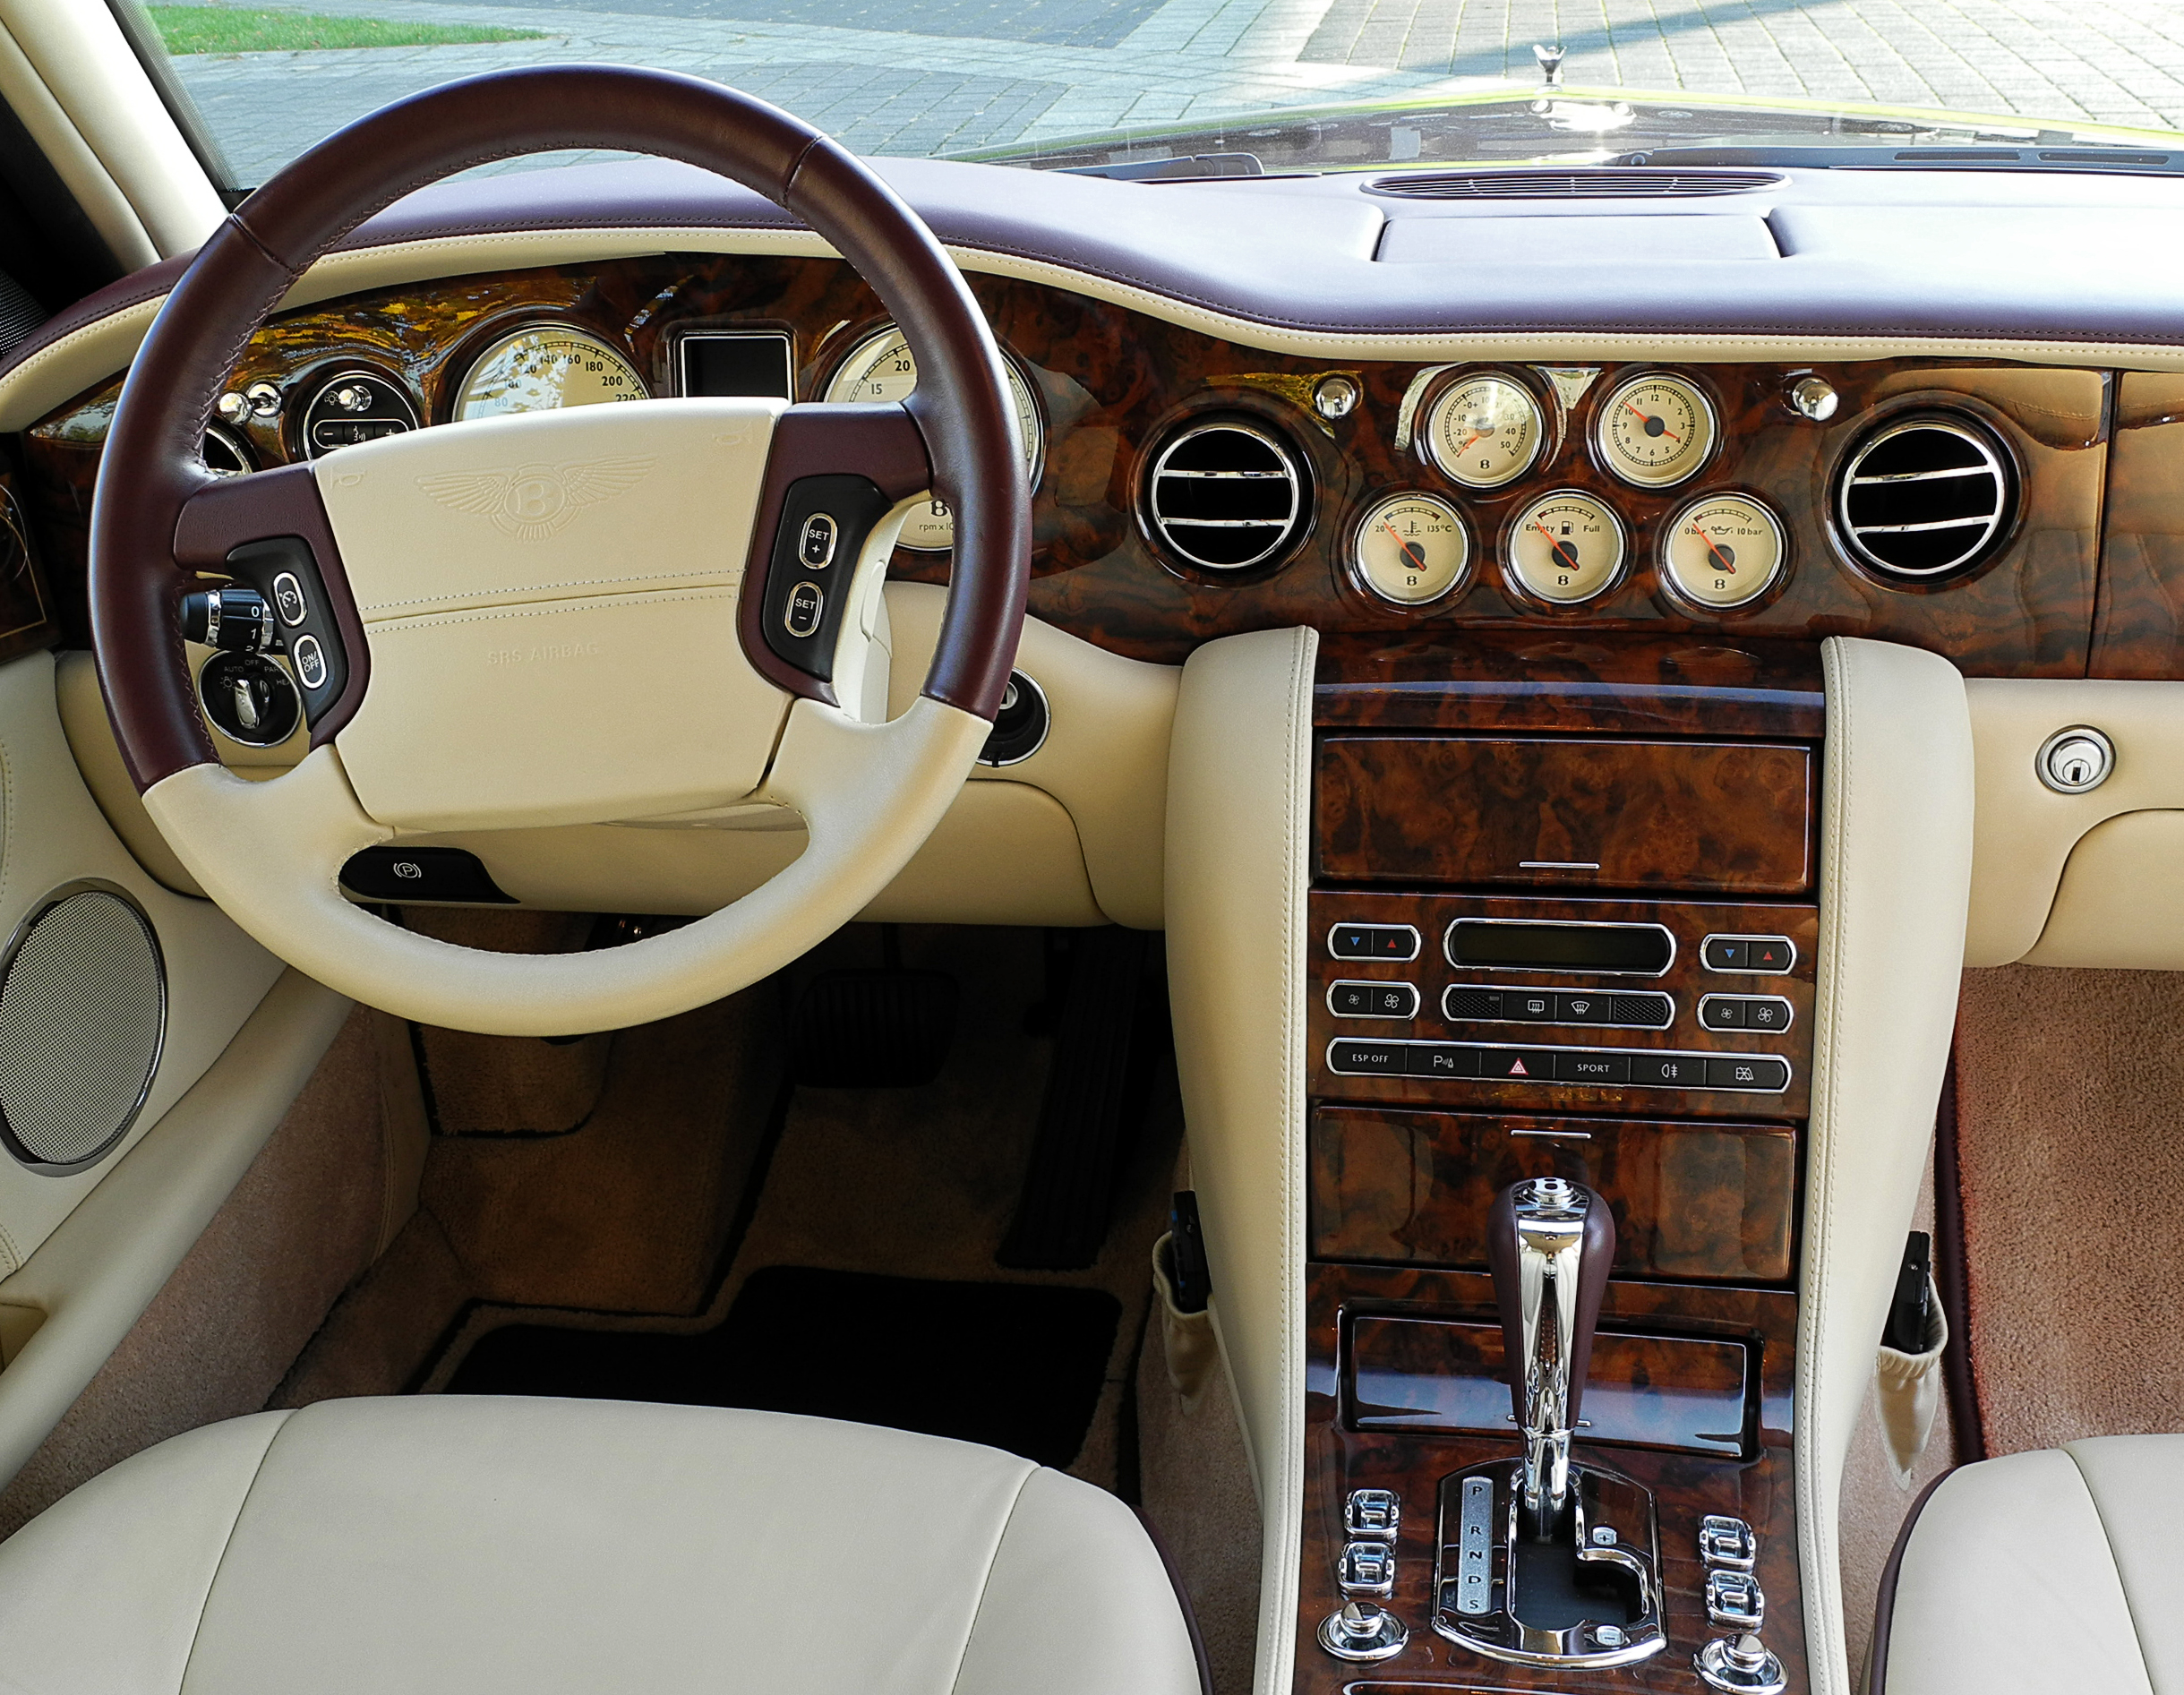 front our out info fill click call contact green product to us for interior arnage alternatively here label sale direct form bentley sold on